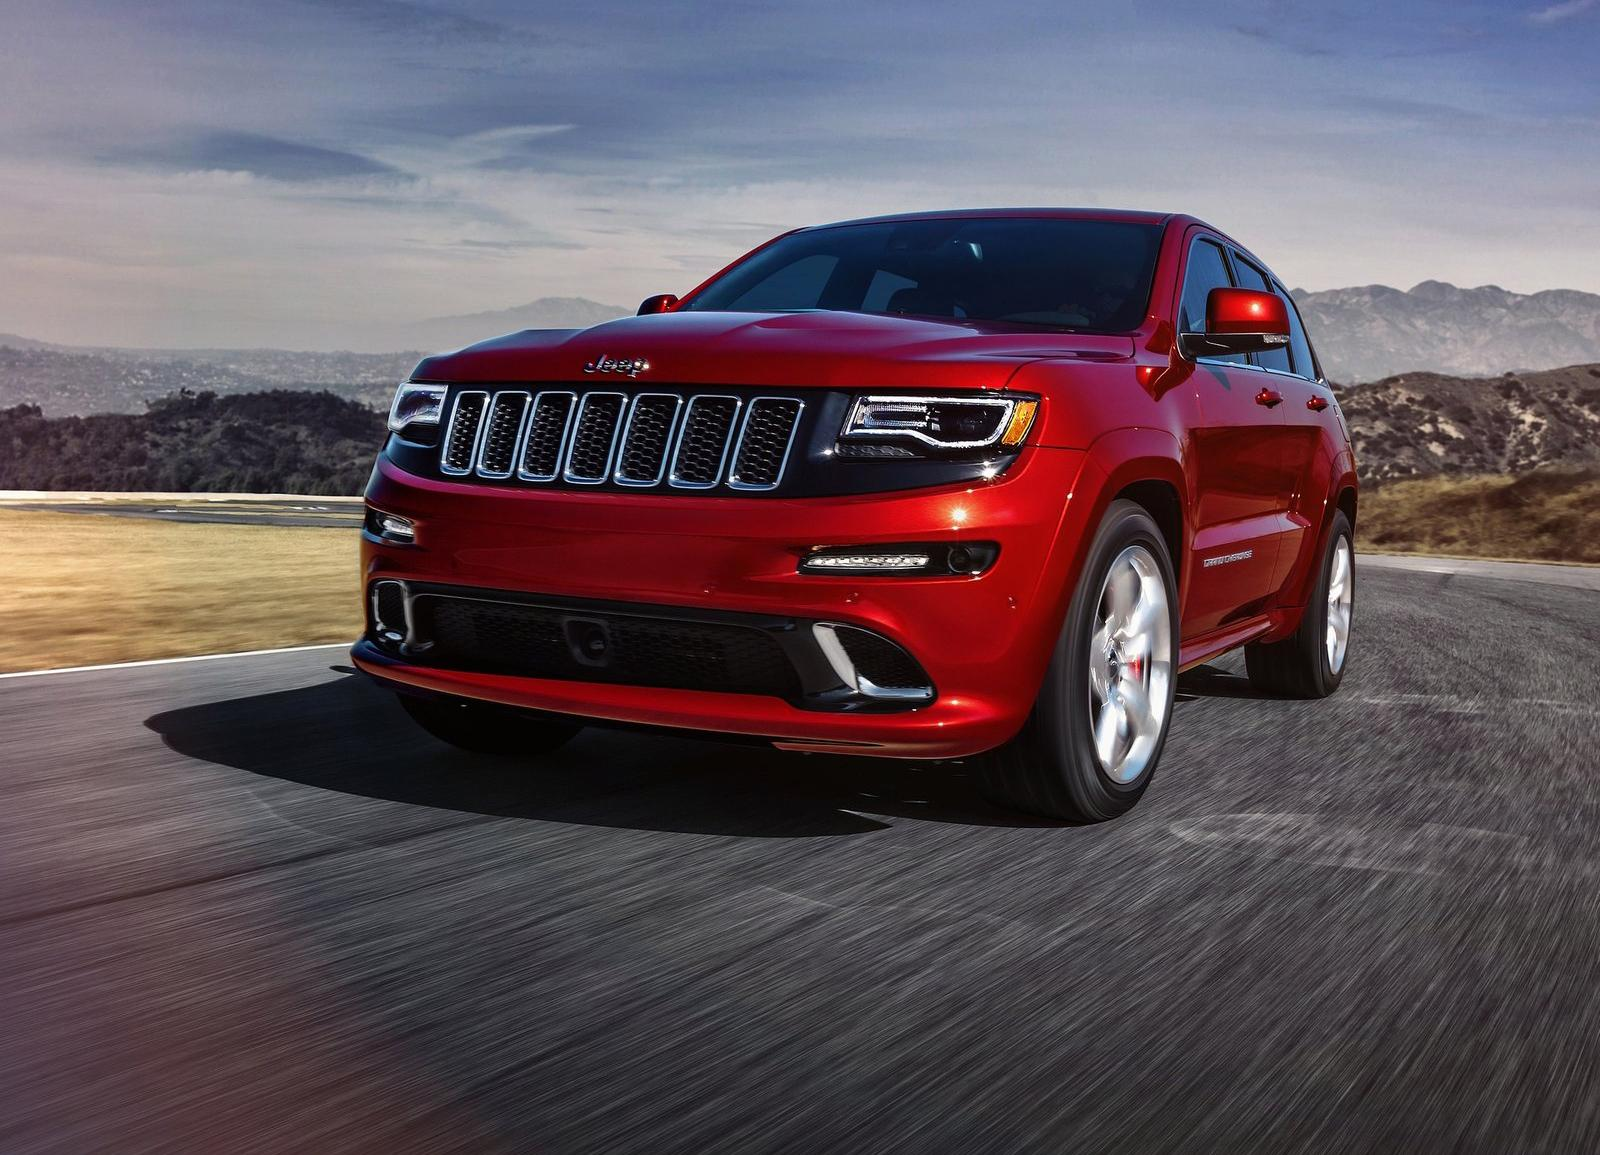 2017 Jeep Grand Cherokee Concept photo - 2